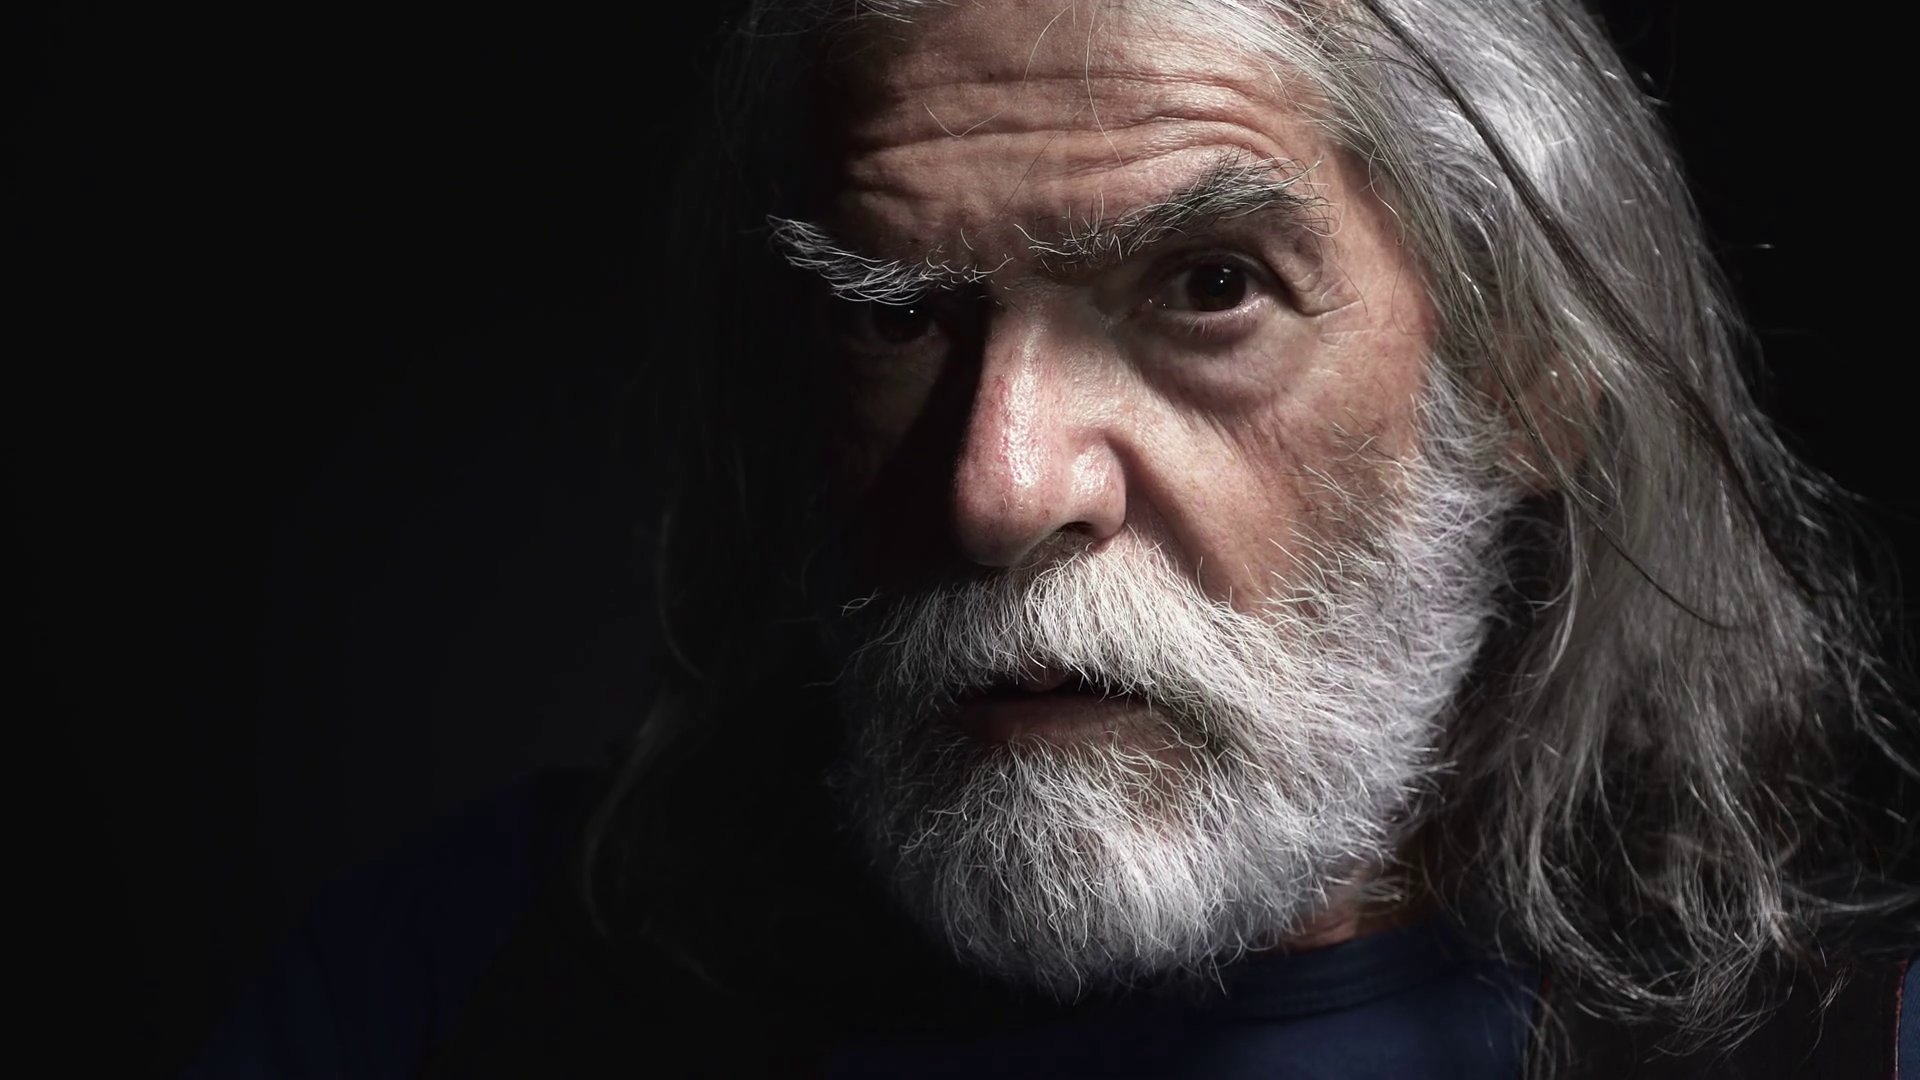 angry serious old man with long white beard looks threatening the ...